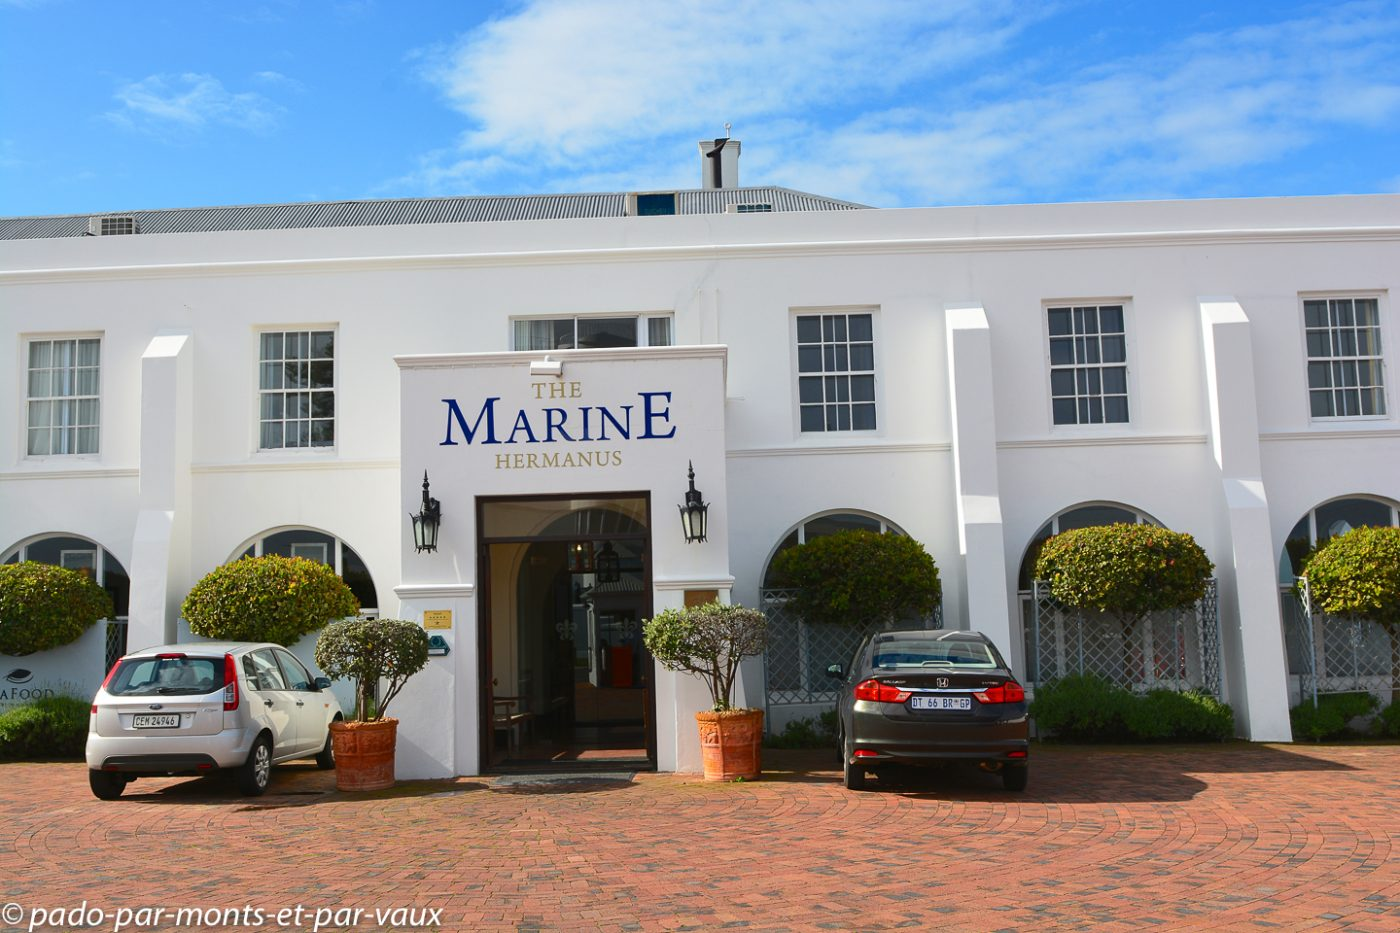 The Marine - Hermanus